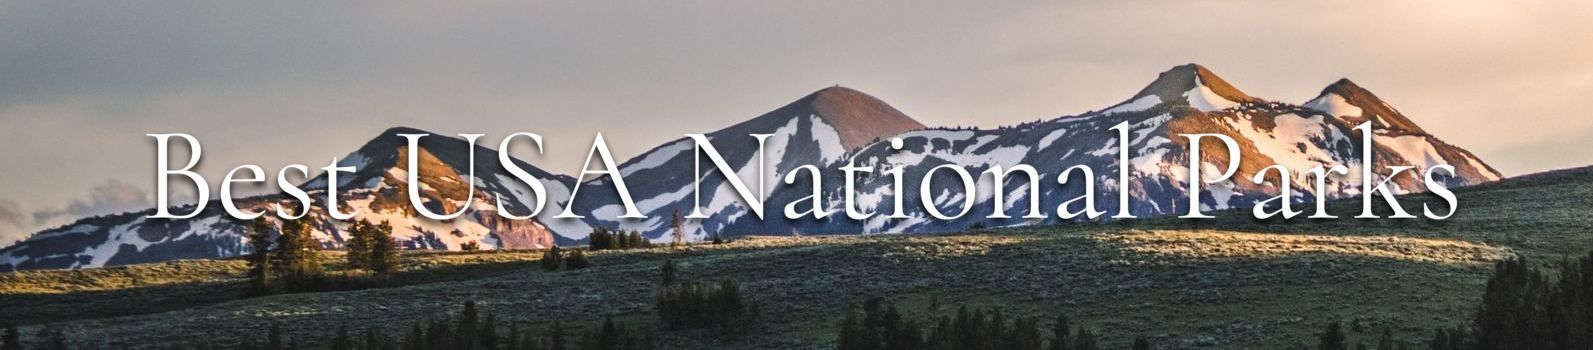 Best National Parks in the USA Banner